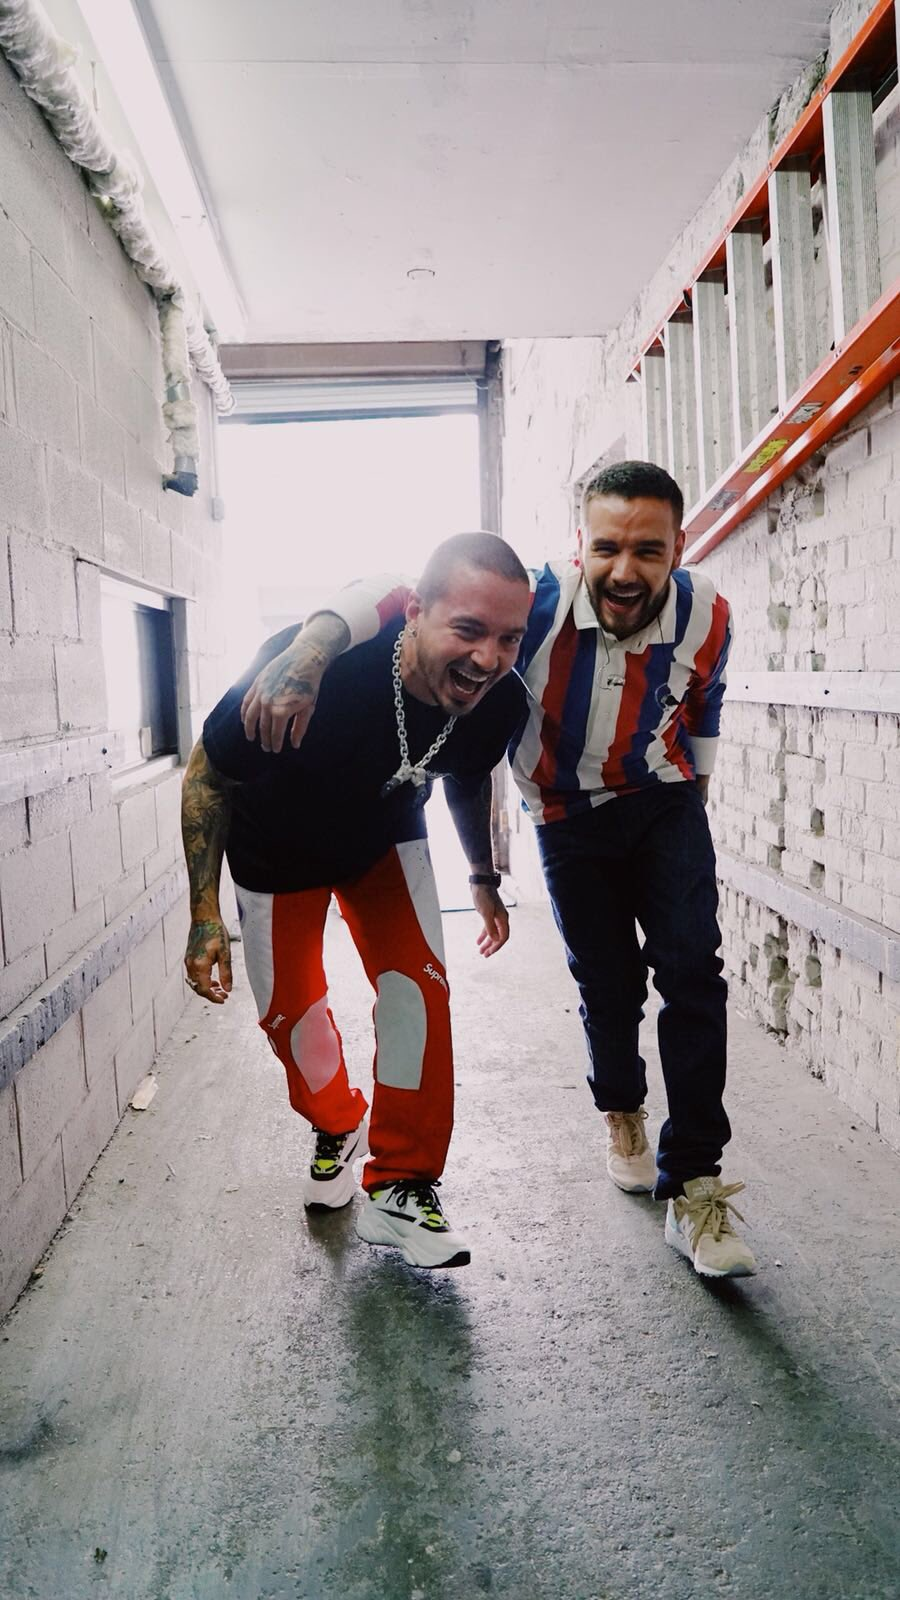 My bro @JBALVIN's new album #Vibras is out now! Go show your support �� https://t.co/KmxelQtffp